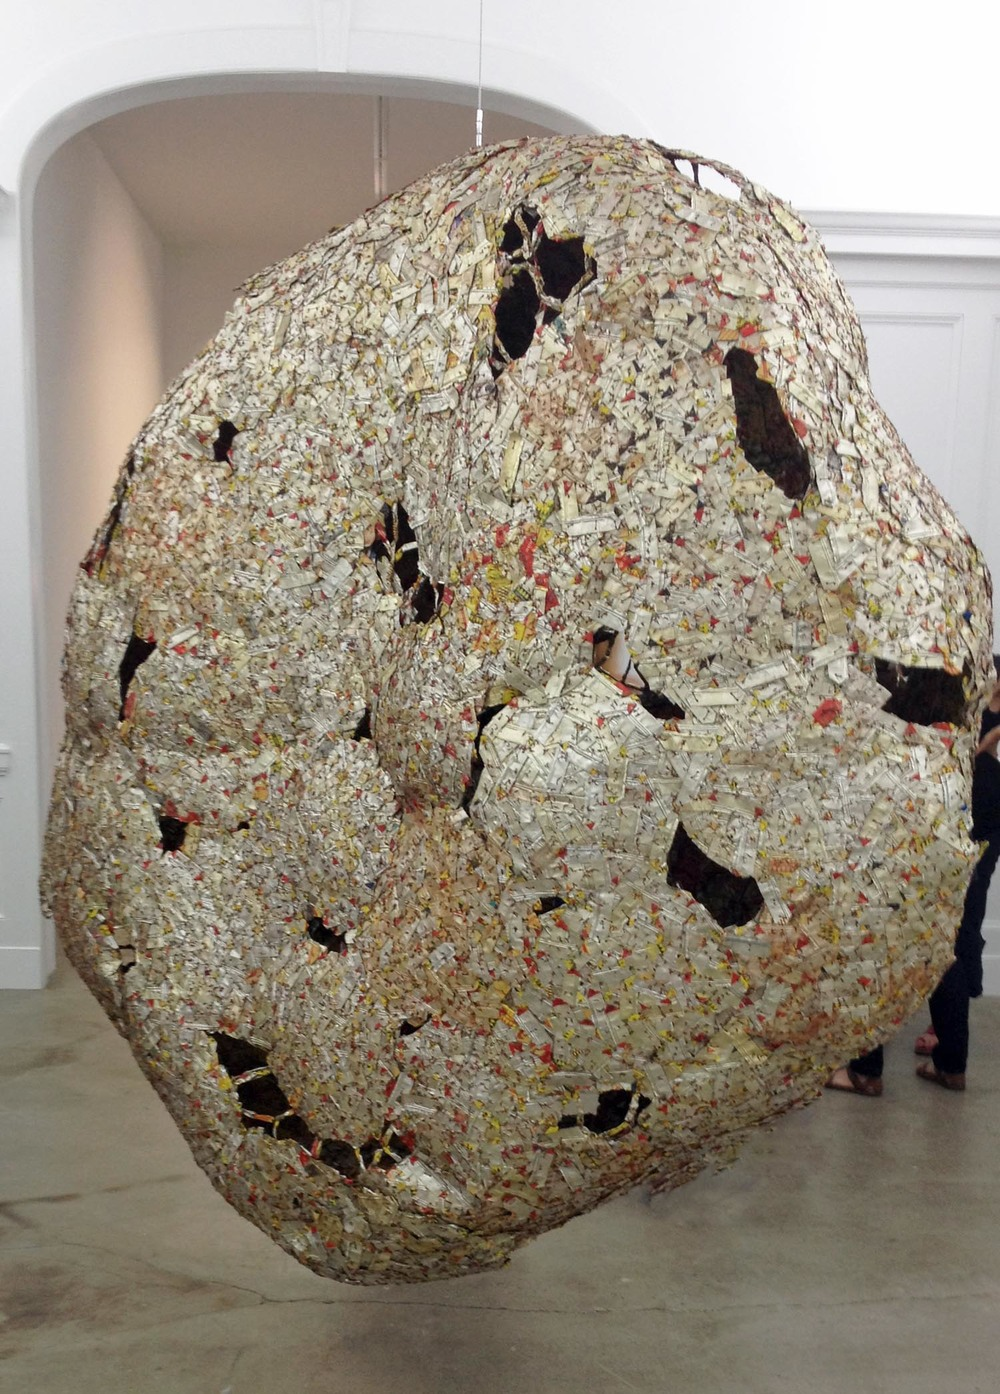 WOMB OF TIME ©EL ANATSUI.  COURTESY OF THE ARTIST AND JACK SHAINMAN GALLERY, NEW YORK